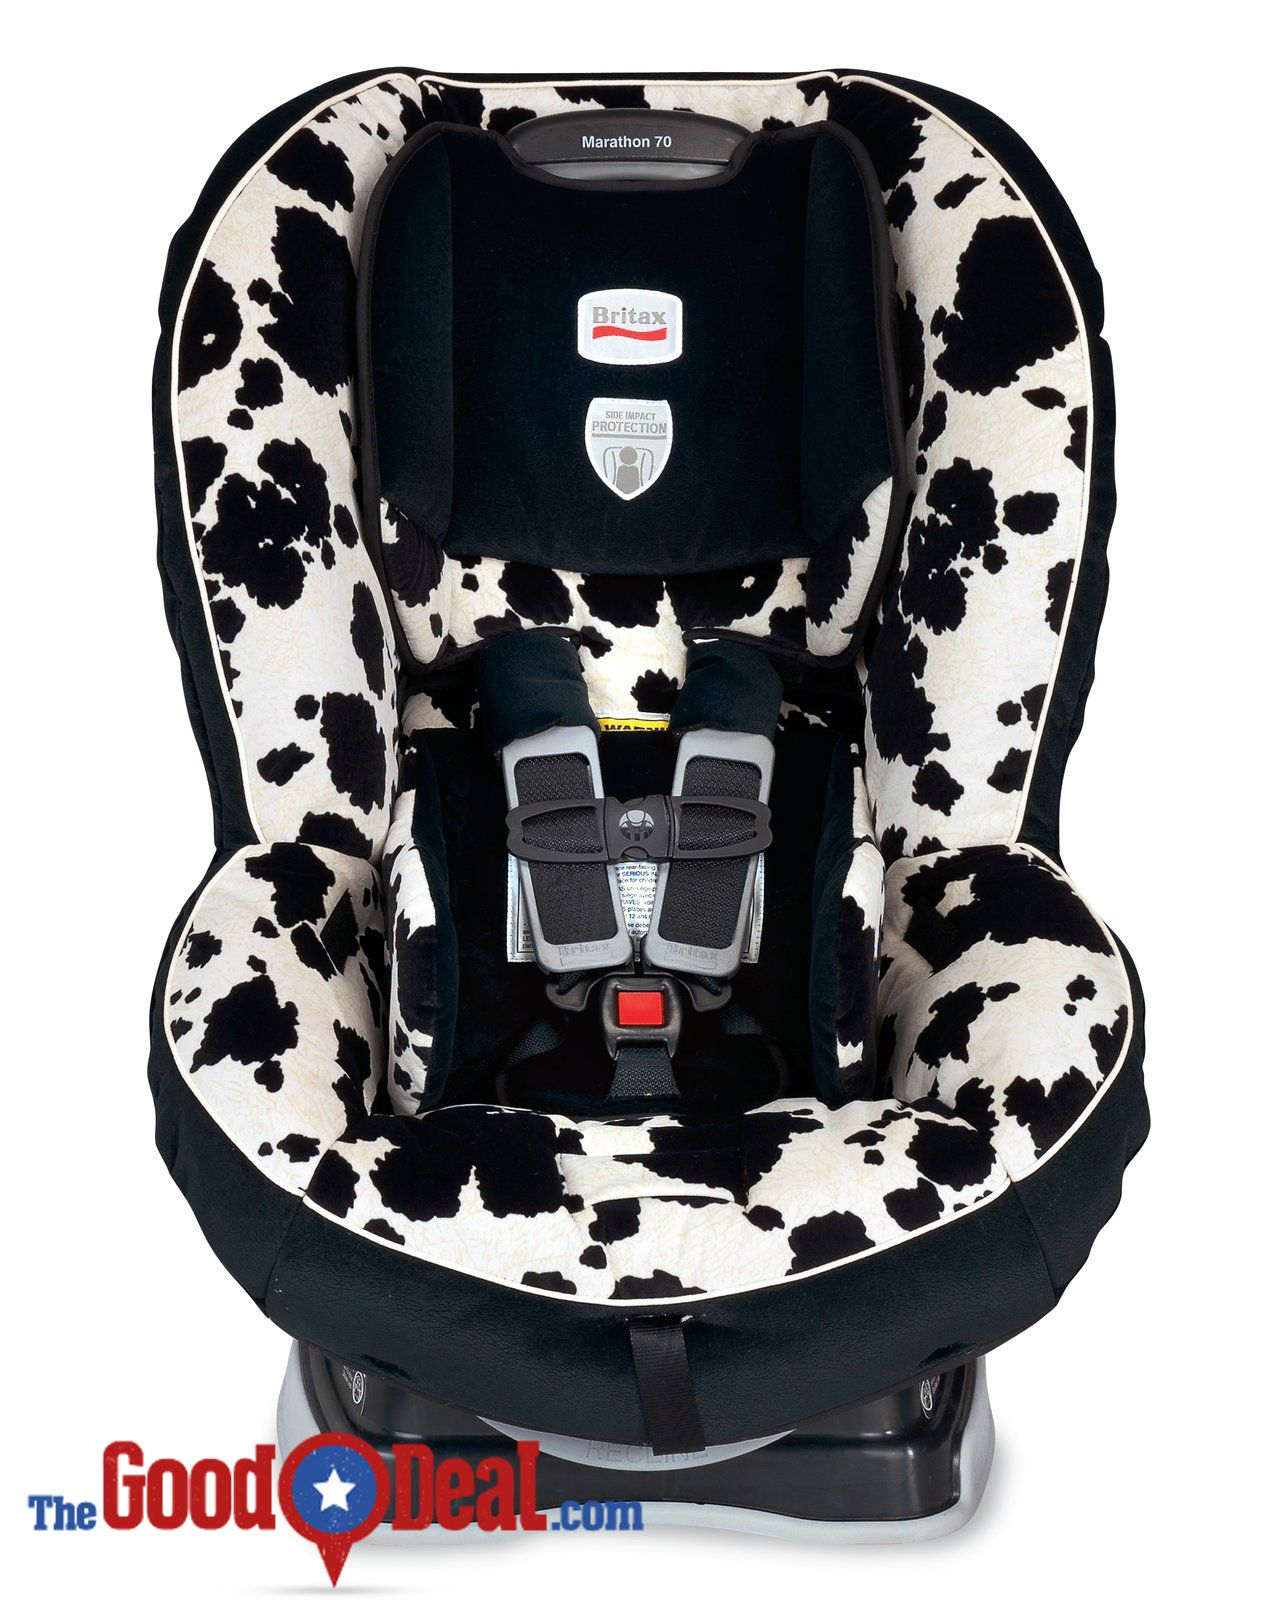 This Britax Marathon Cowmooflage Car Seat Would Certainly Make A Statement On The Roads Available For Only 80 TheGoodDeal